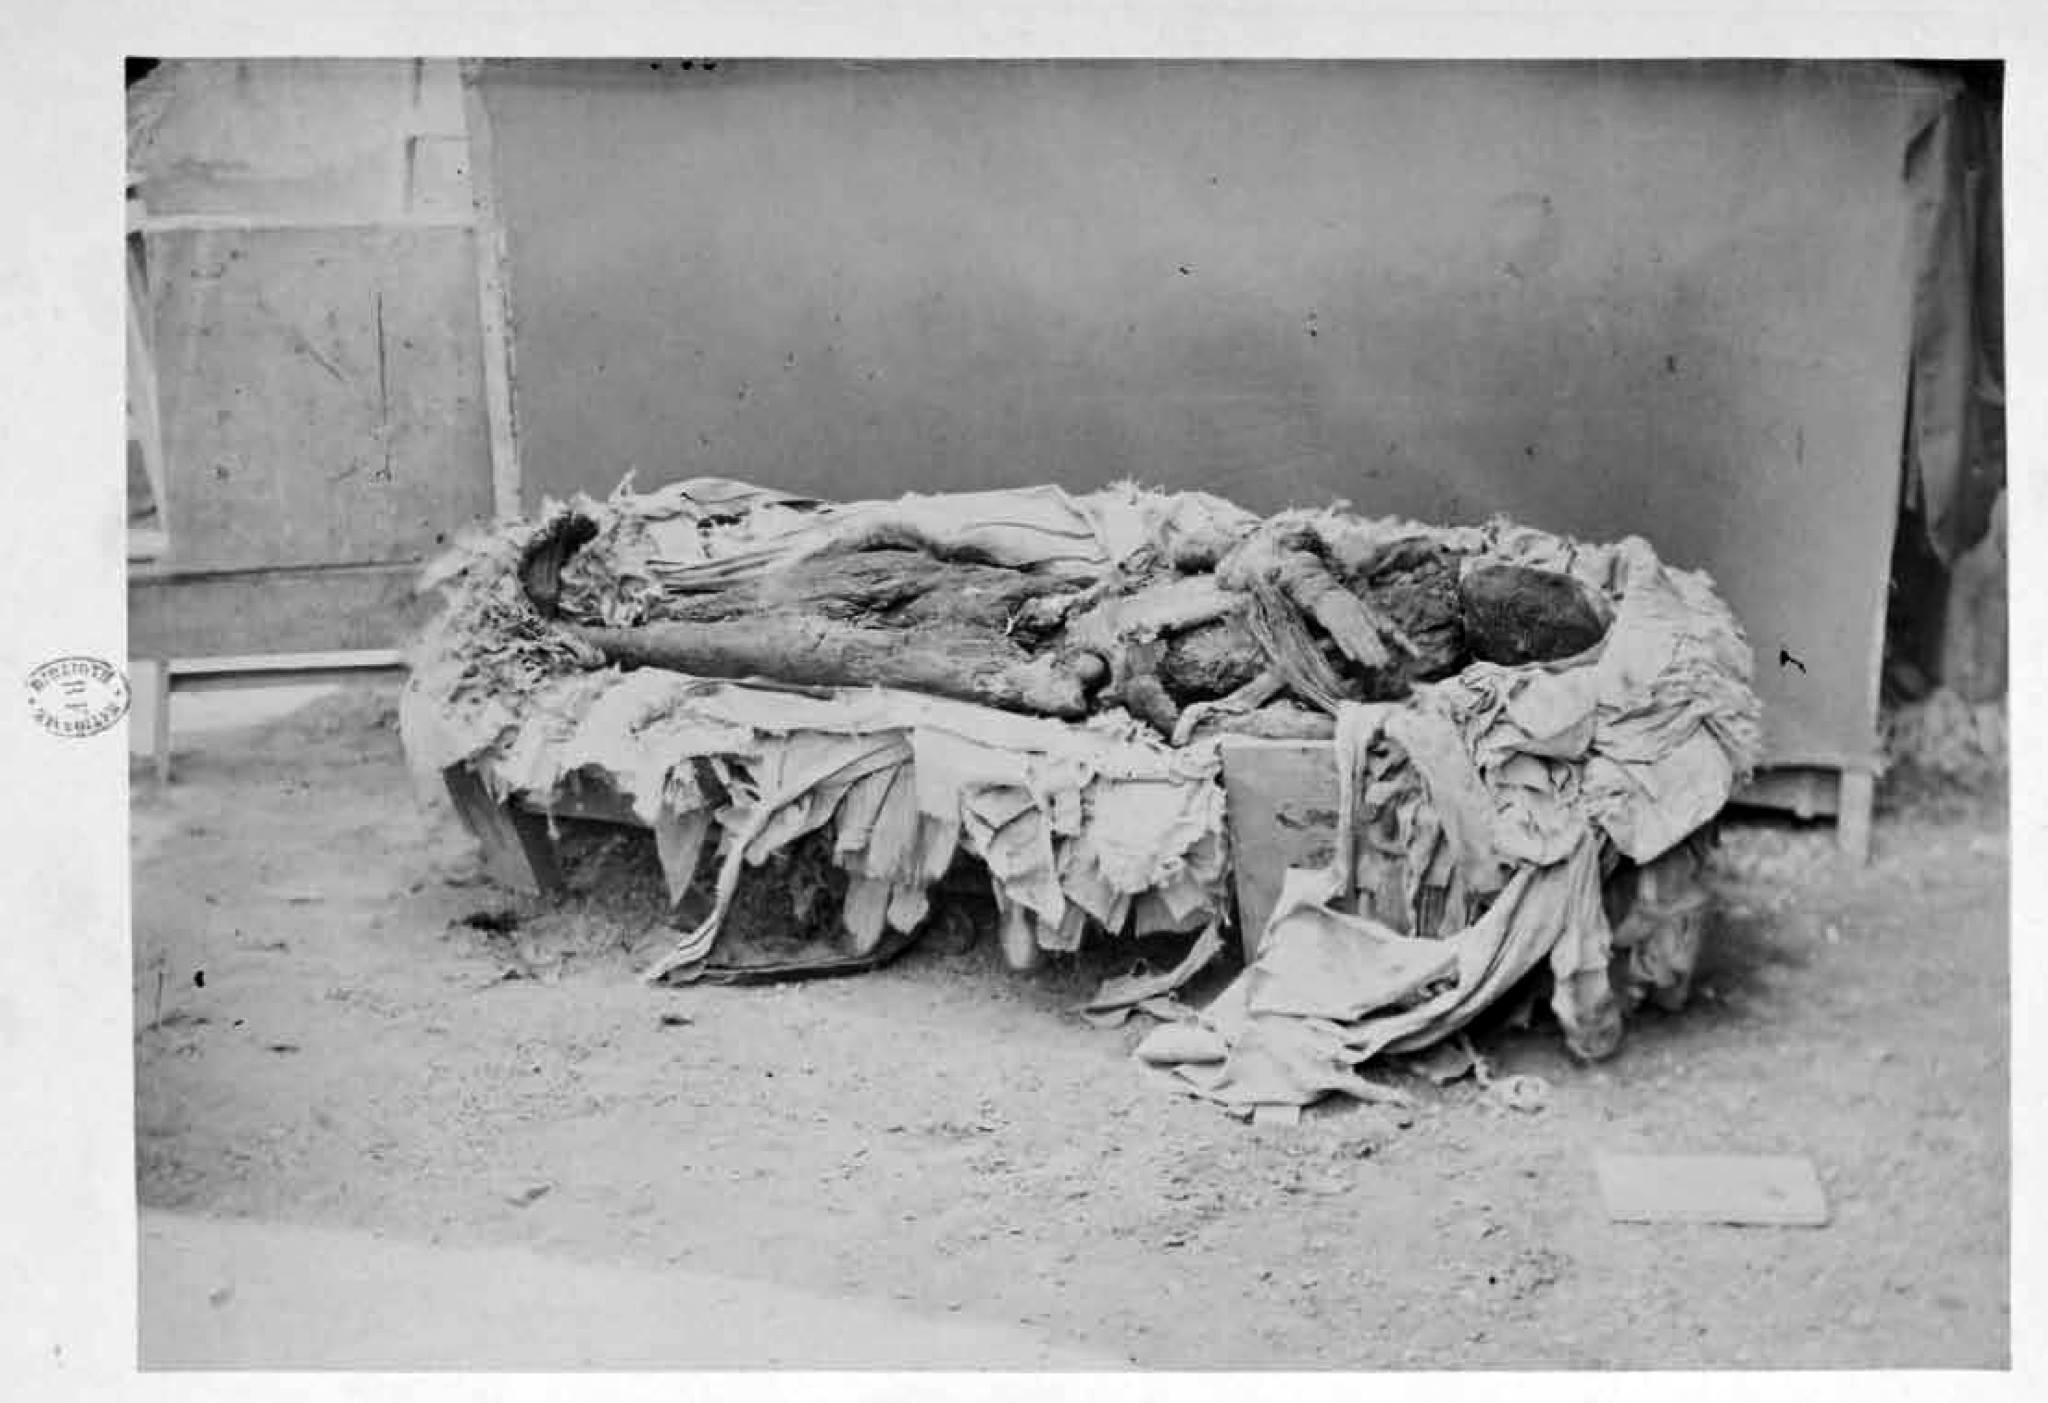 Mummy of thutmose III after unwrapping